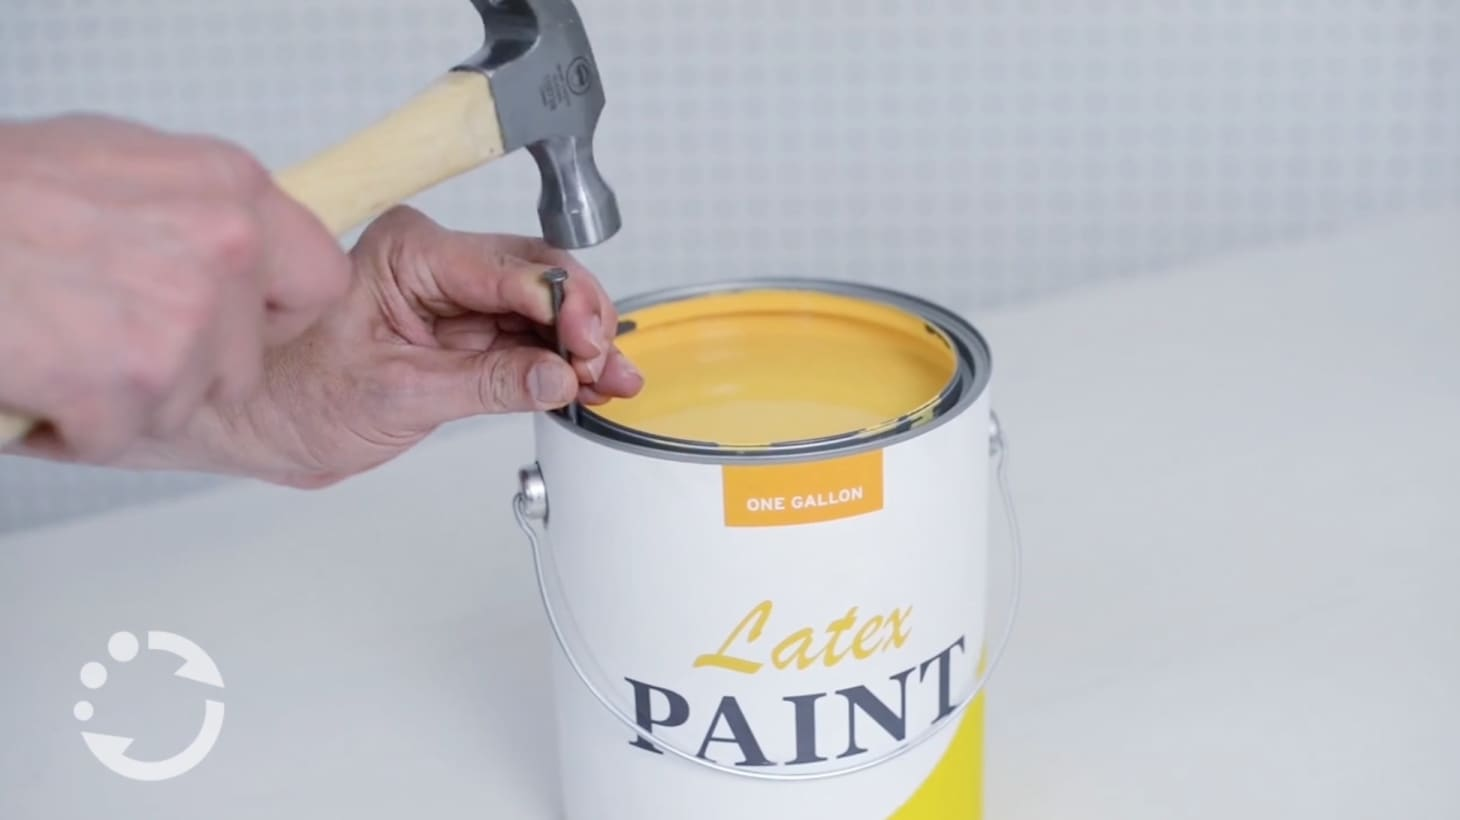 12 tips and hacks that make painting cleanup easy